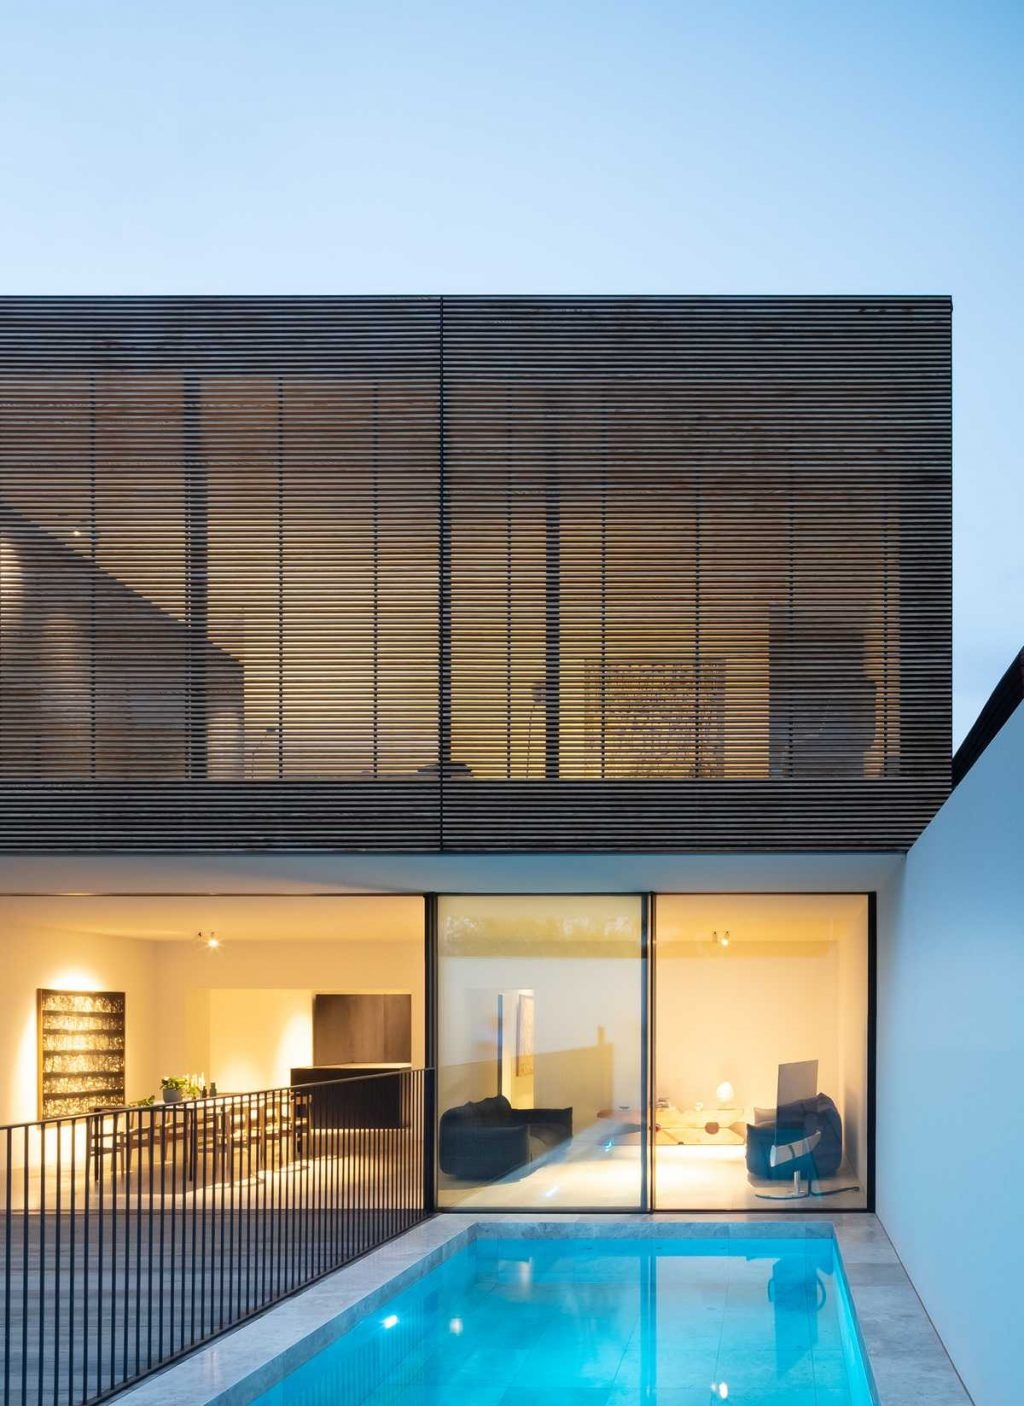 Extension to an existing house by Modscape